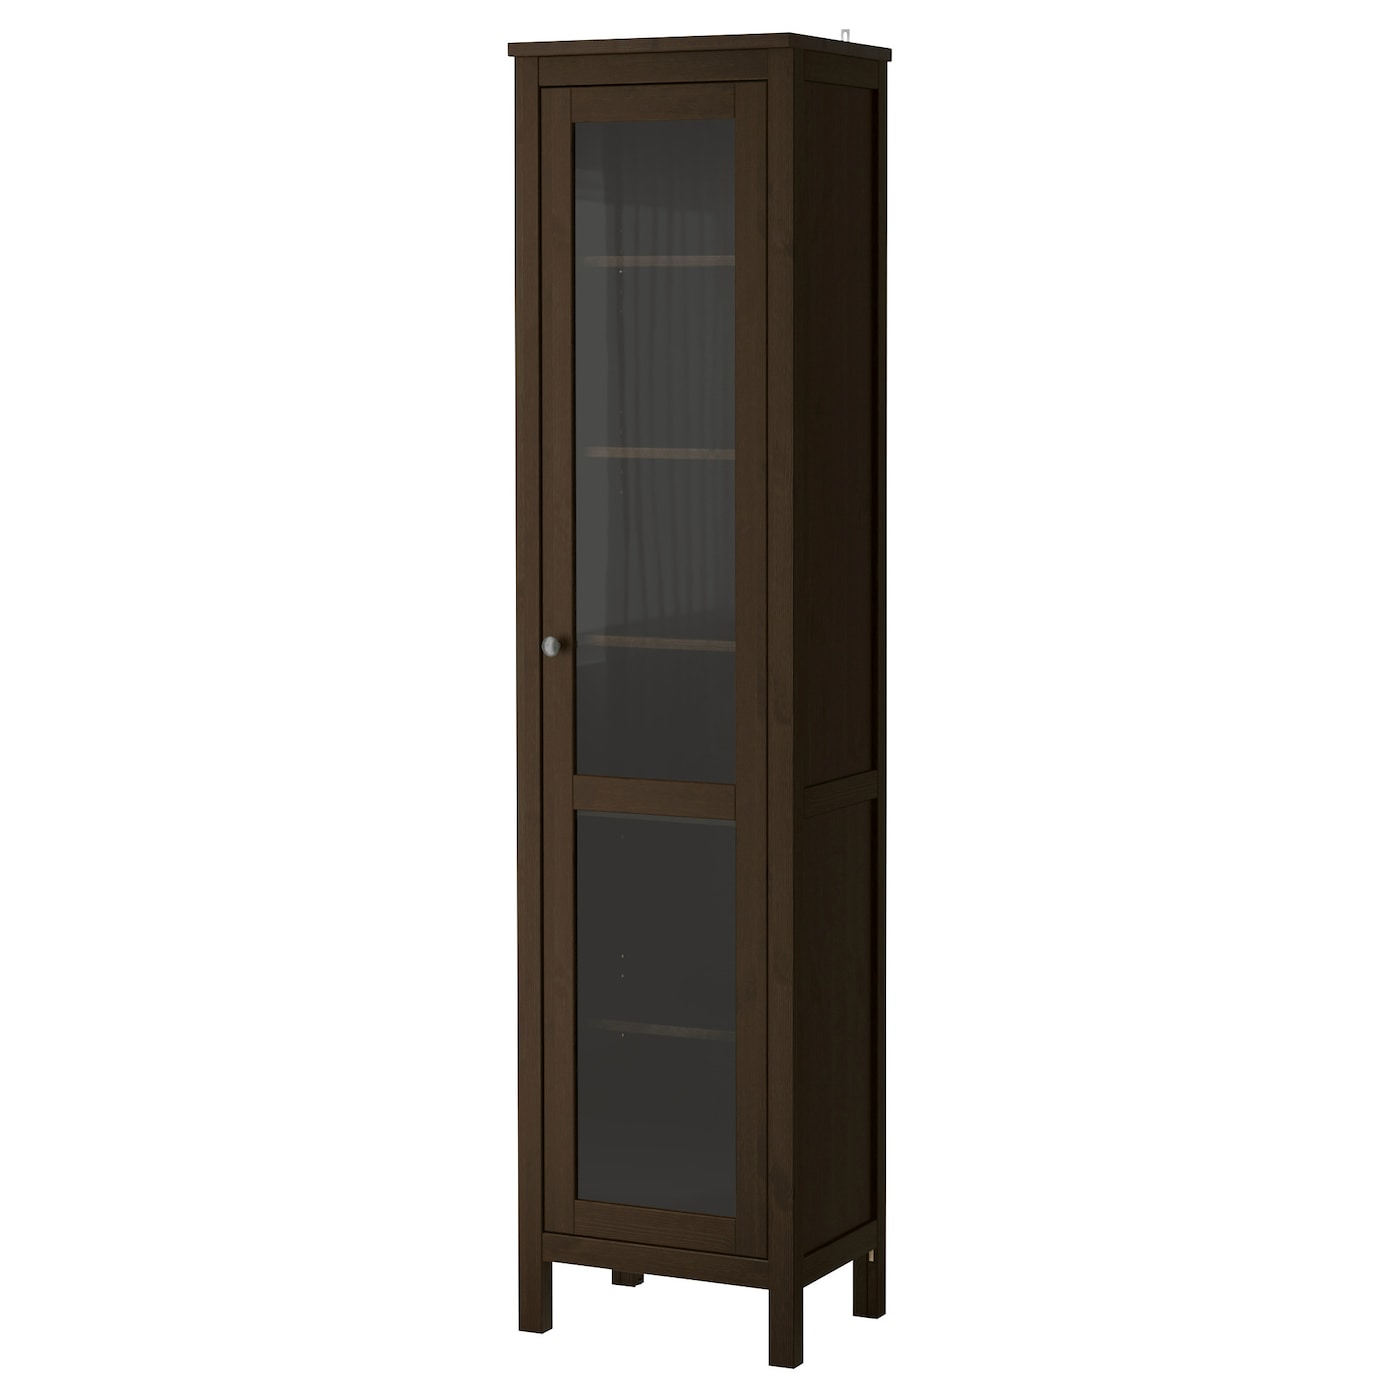 Ikea Leksvik Kinderbett Preis ~ IKEA HEMNES glass door cabinet Solid wood has a natural feel 1 fixed